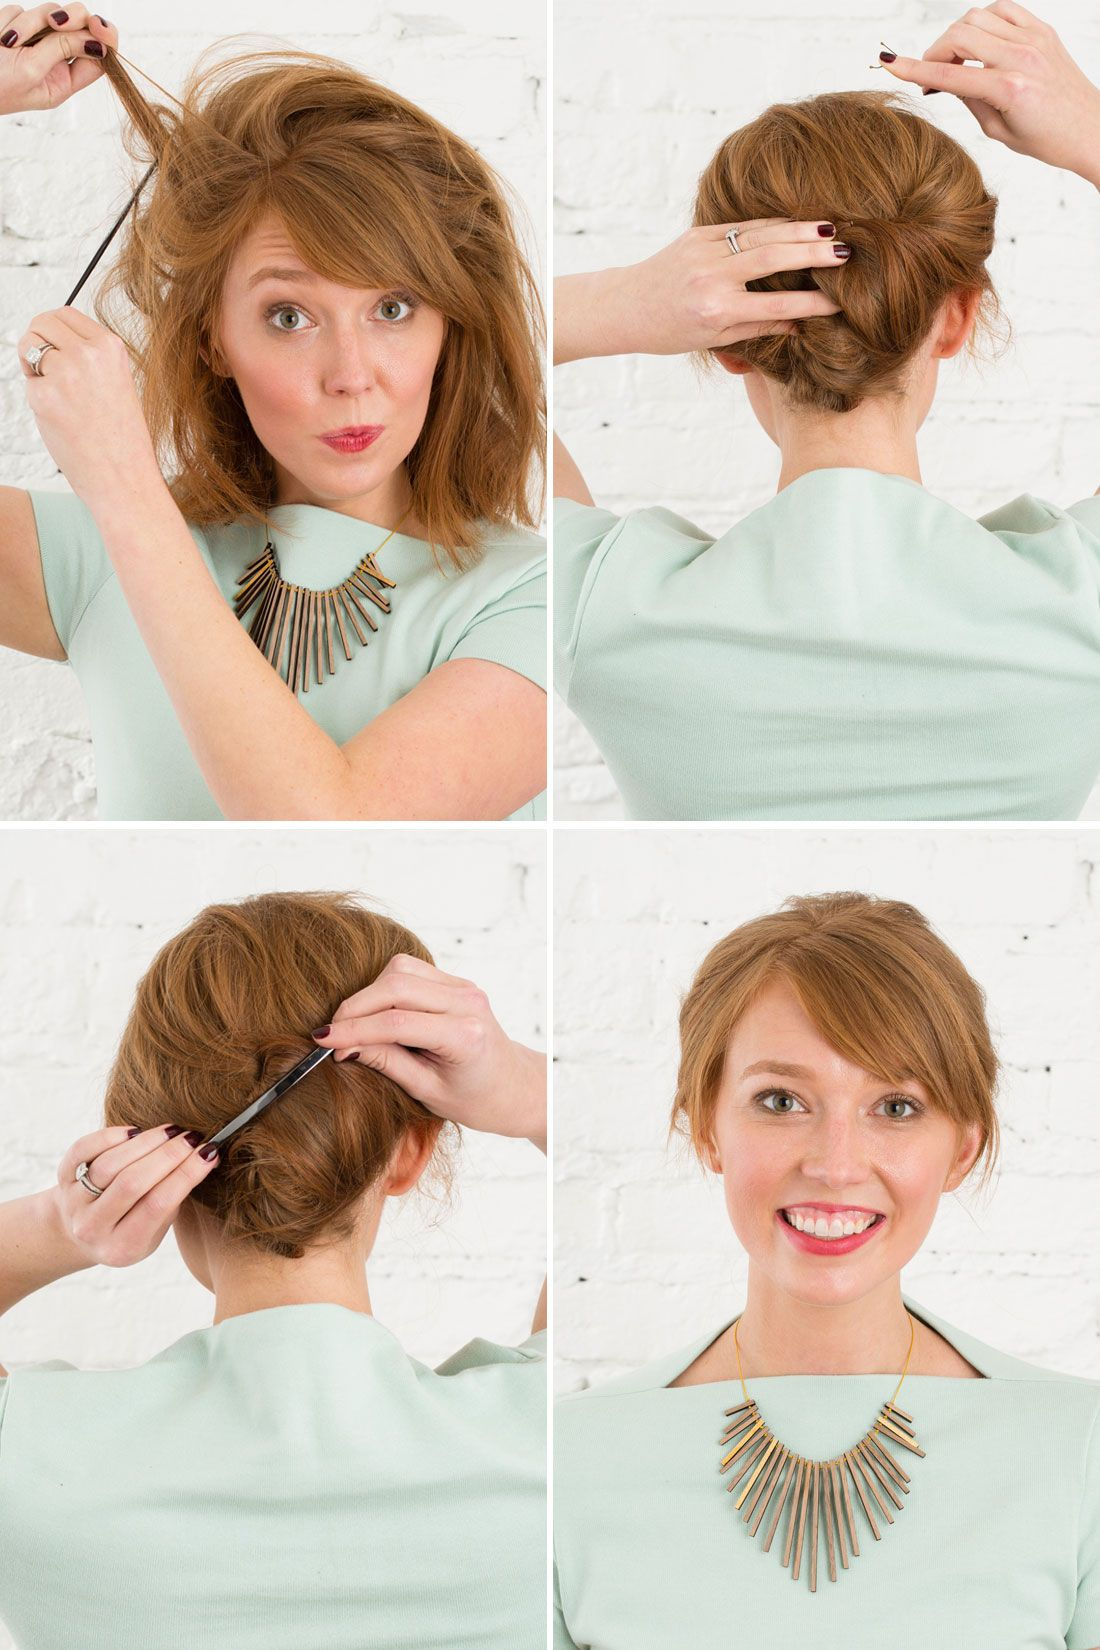 Barrette Hairstyles Pleasing 3 Easy 5Minute Hairstyles Using Emma Stone's Metal Barrette  Updo